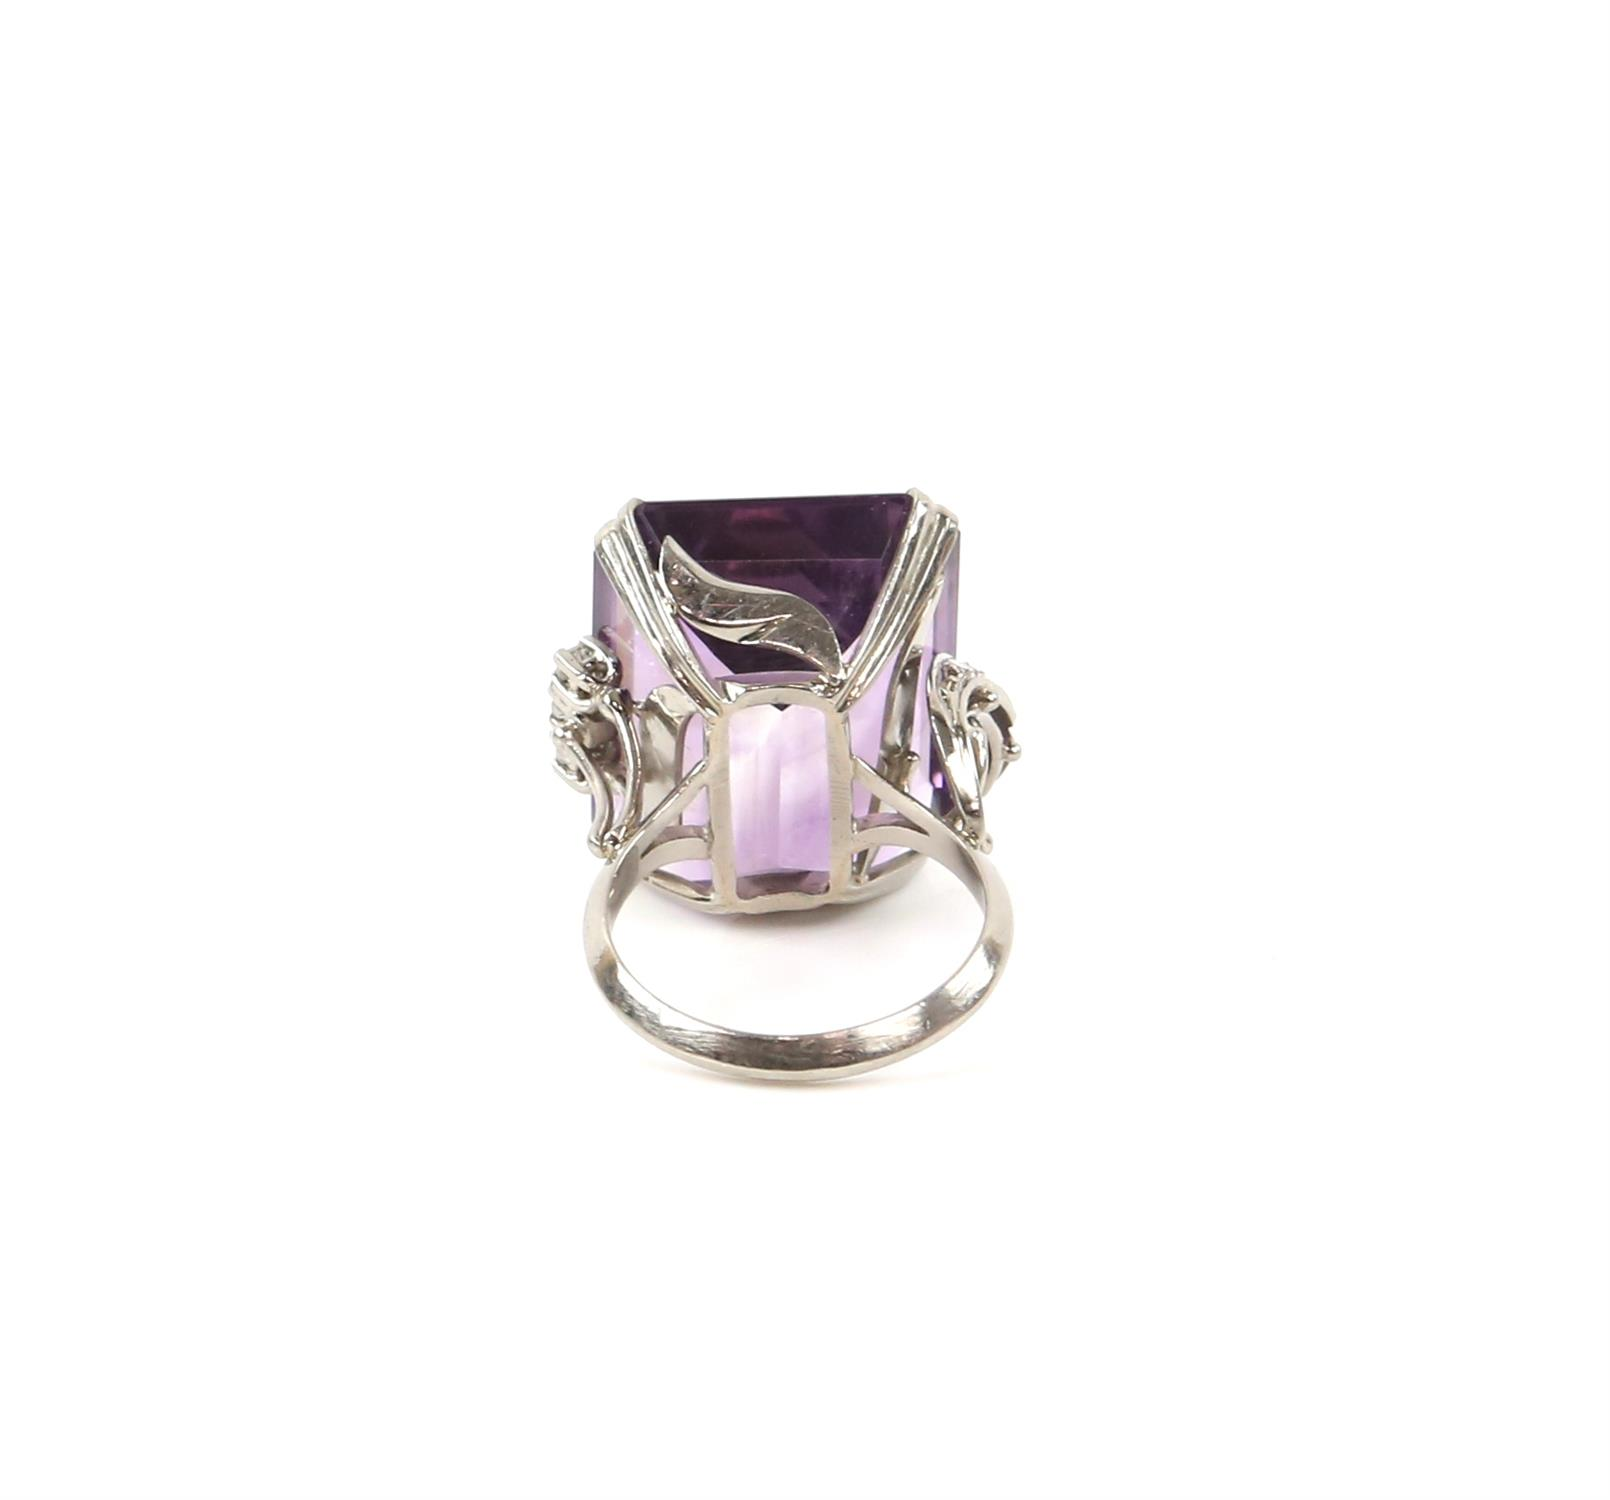 Amethyst and diamond cocktail ring, central rectangular cut amethyst, estimate weight 22.78 carats, - Image 4 of 7